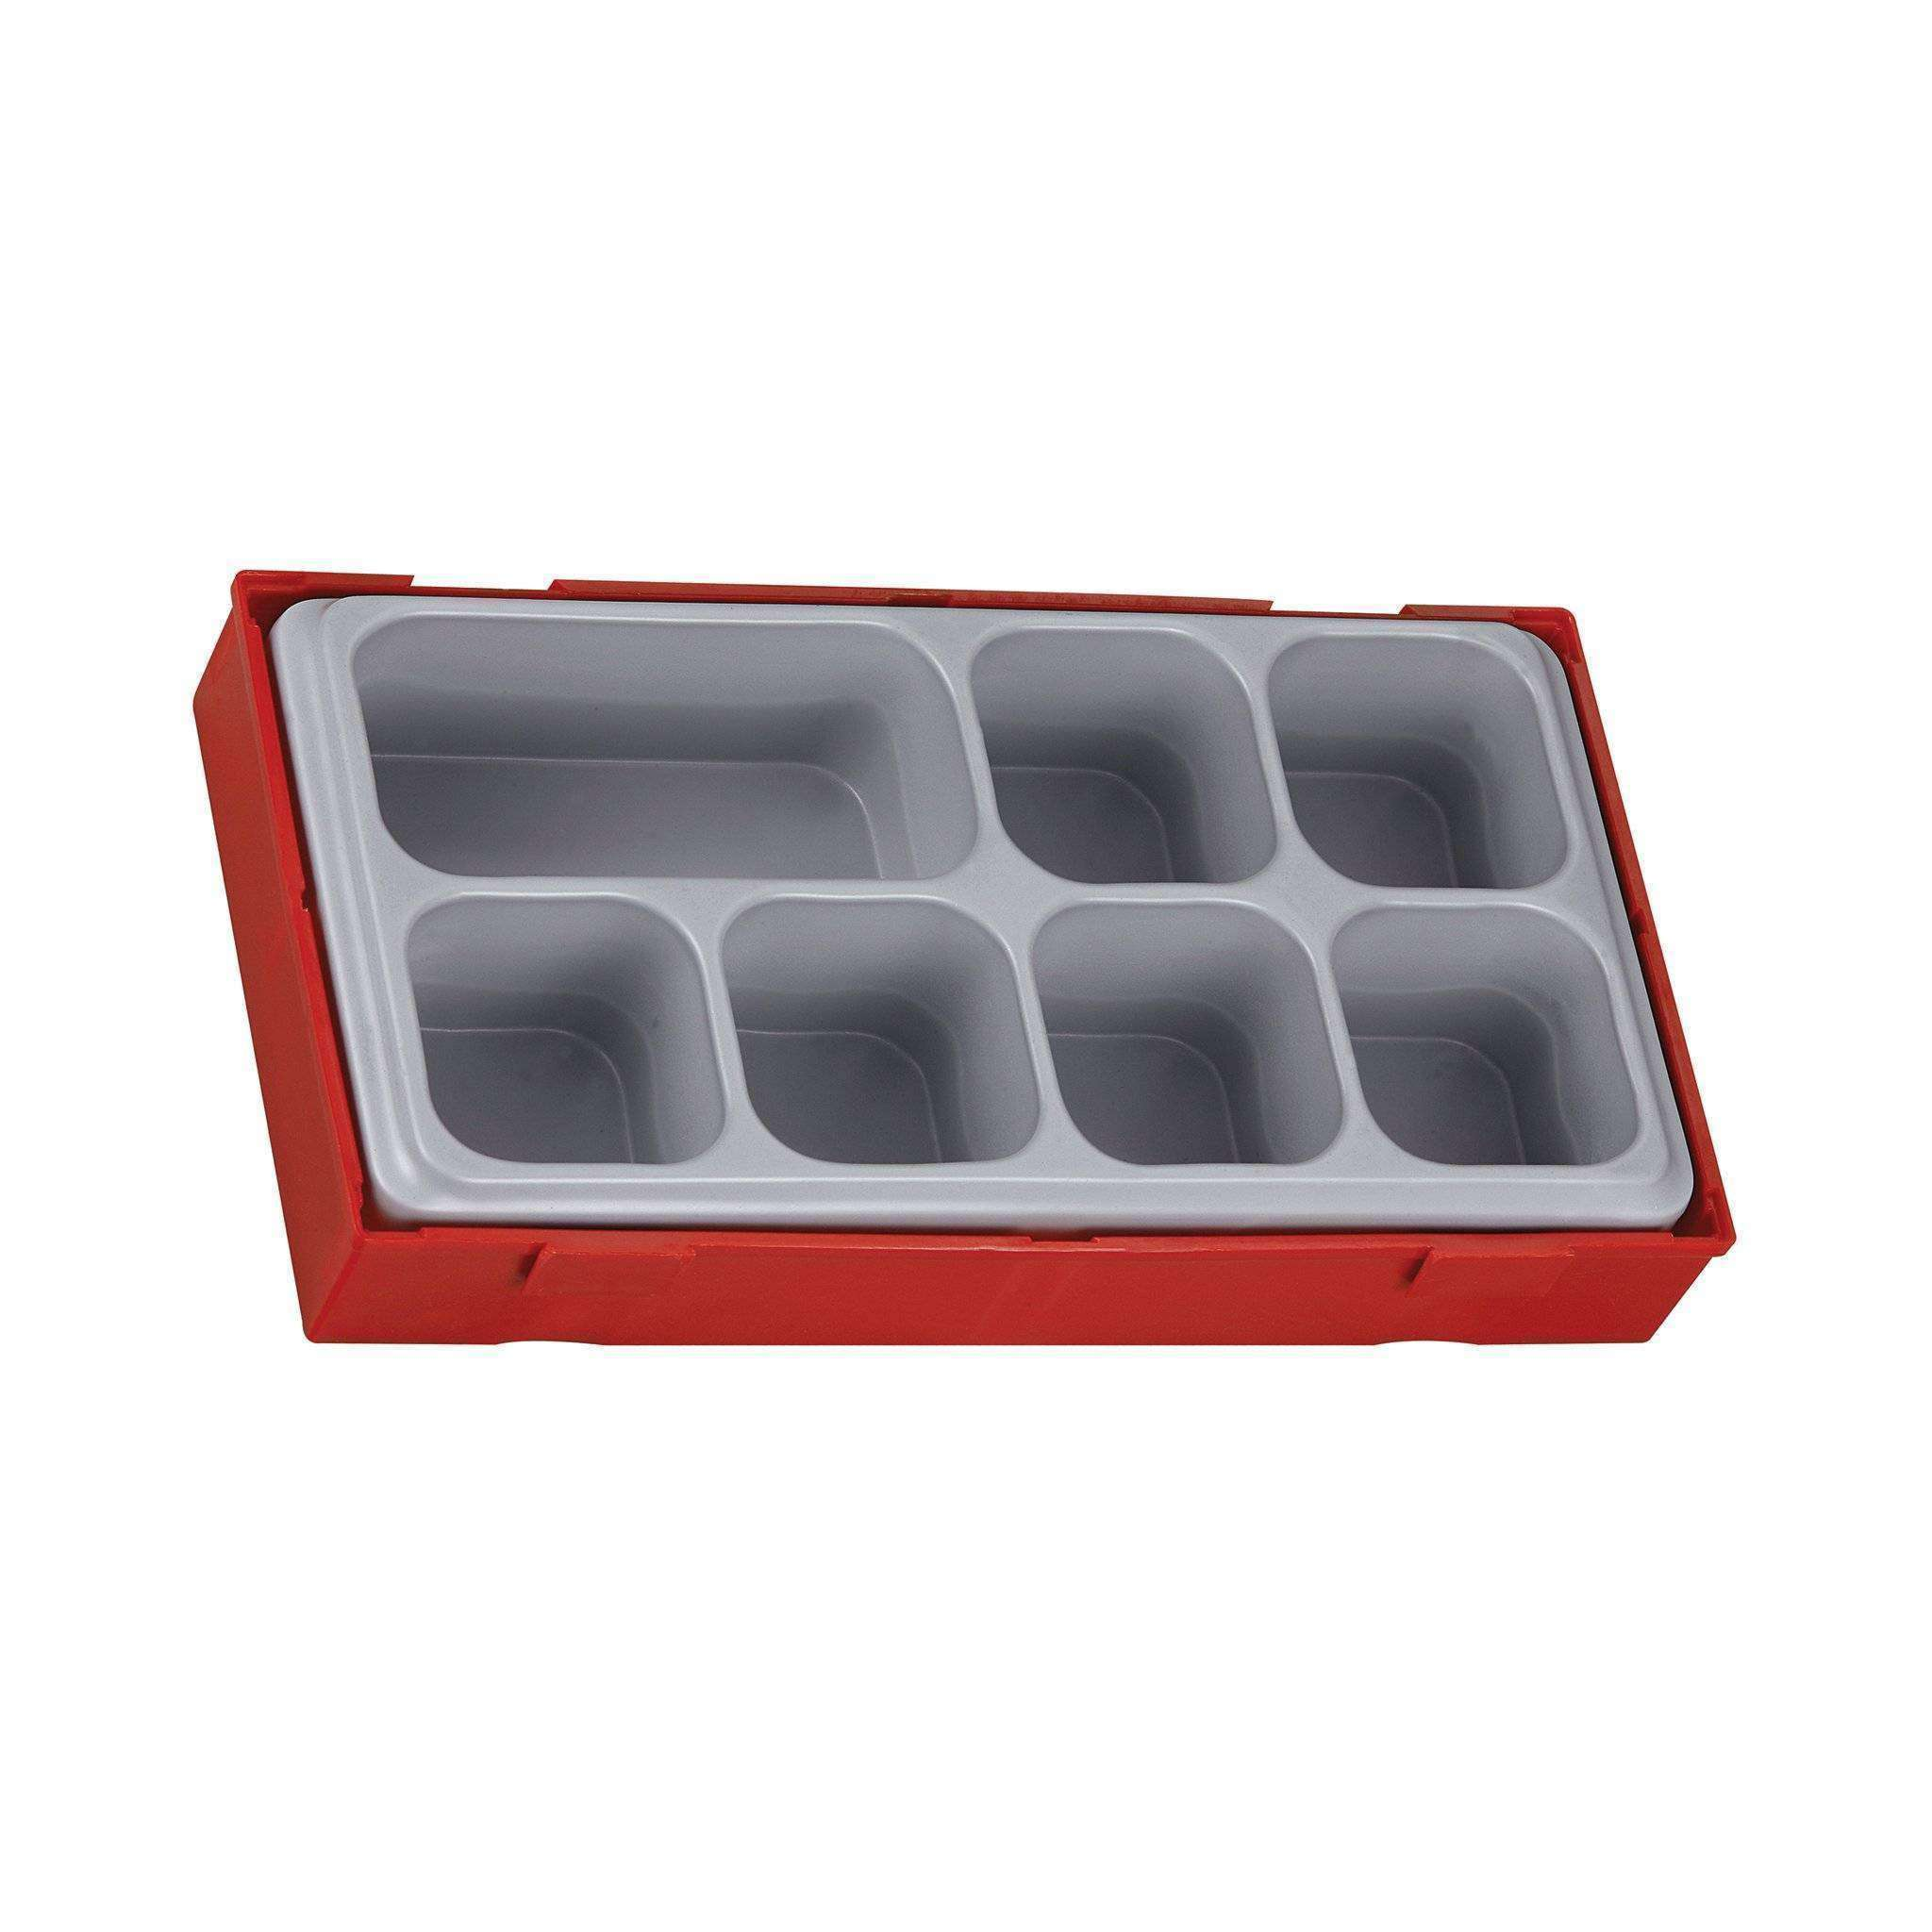 TC TRAY WITH PS TRAY DIVIDERS - Teng Tools USA